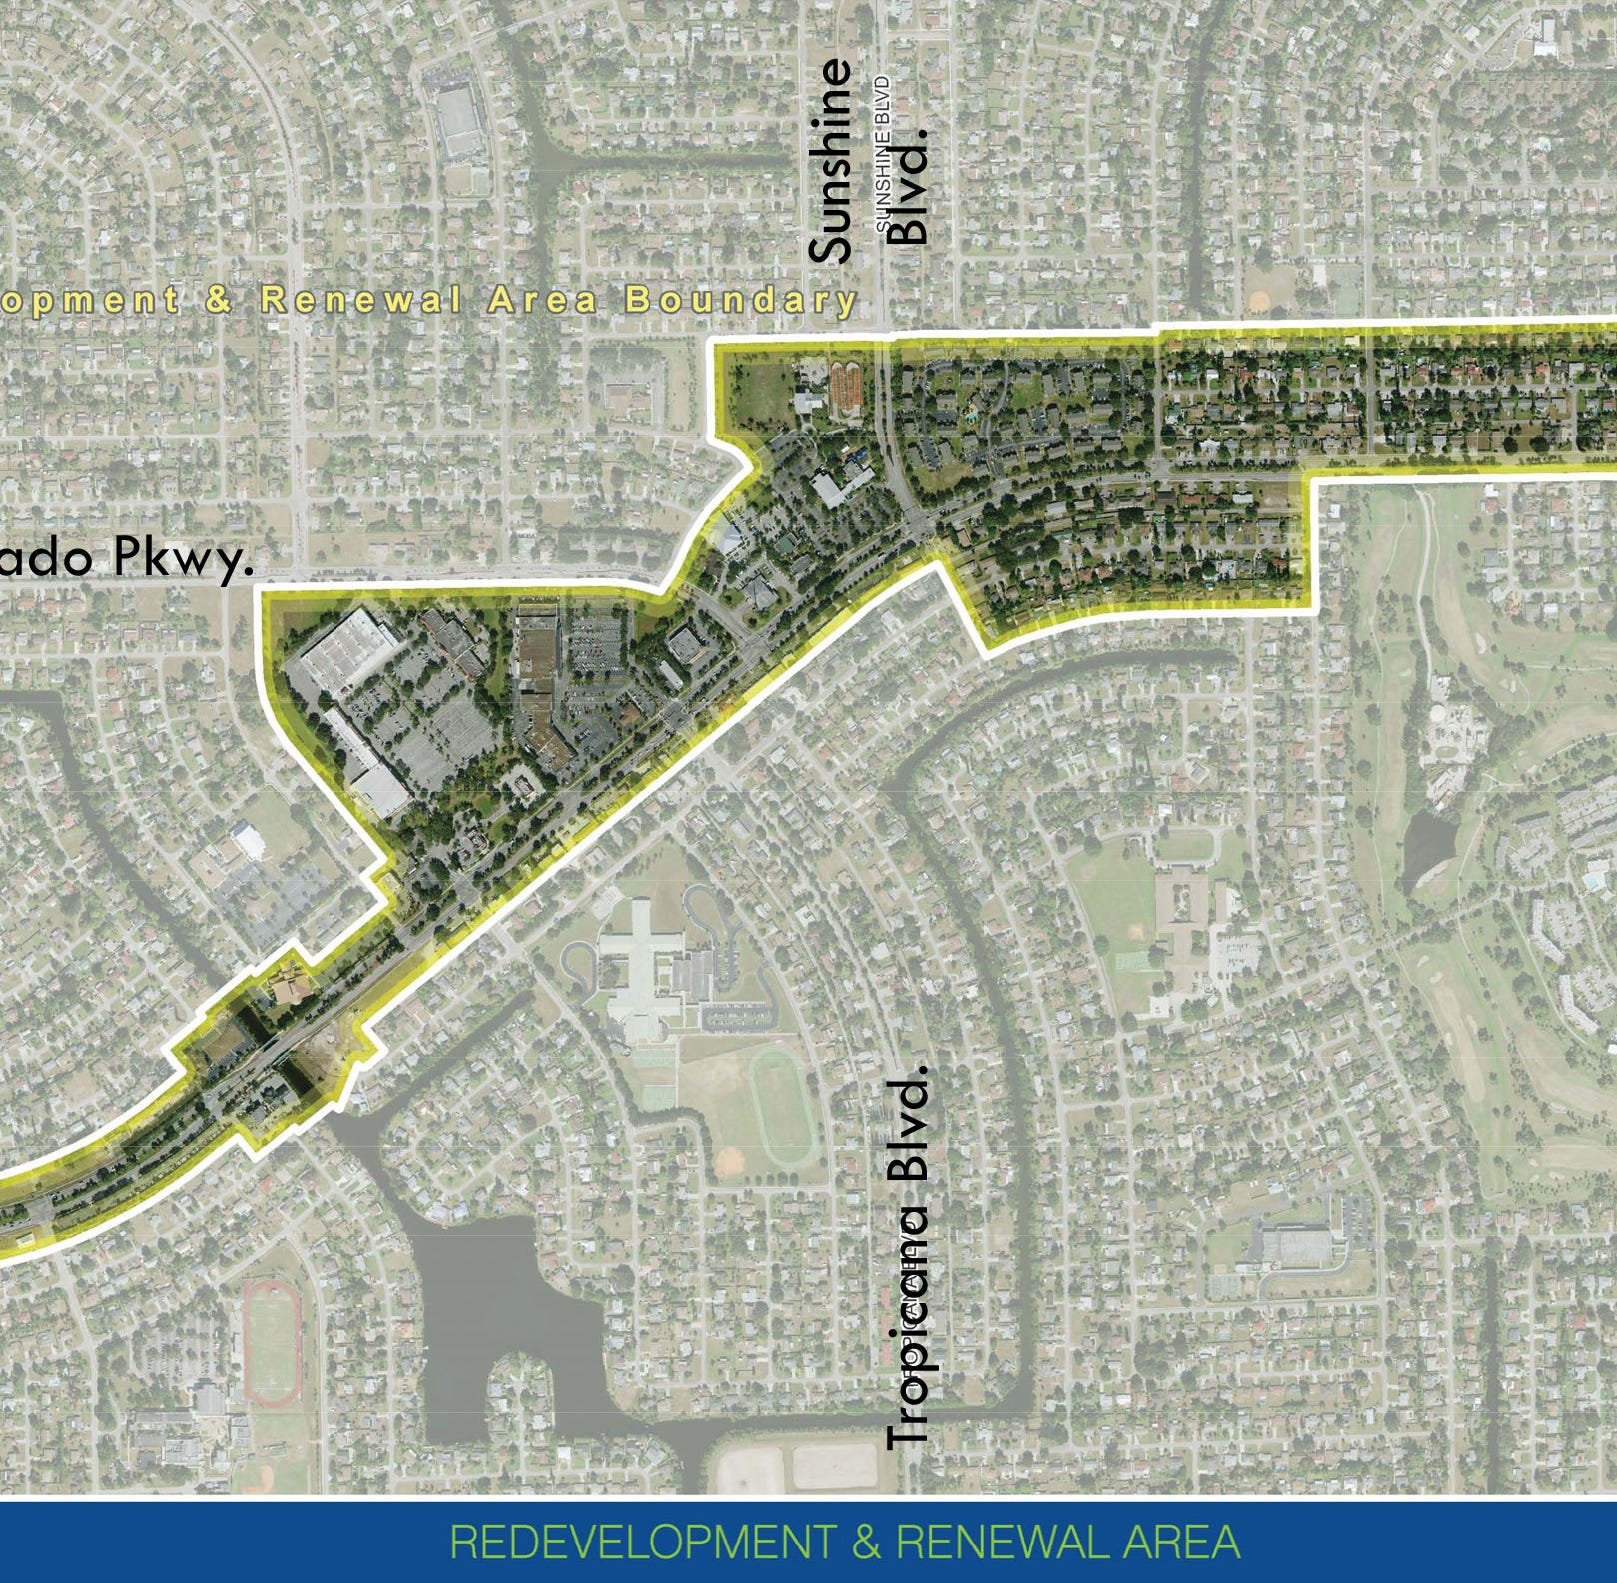 Collier officials to present plans to spur Golden Gate redevelopment